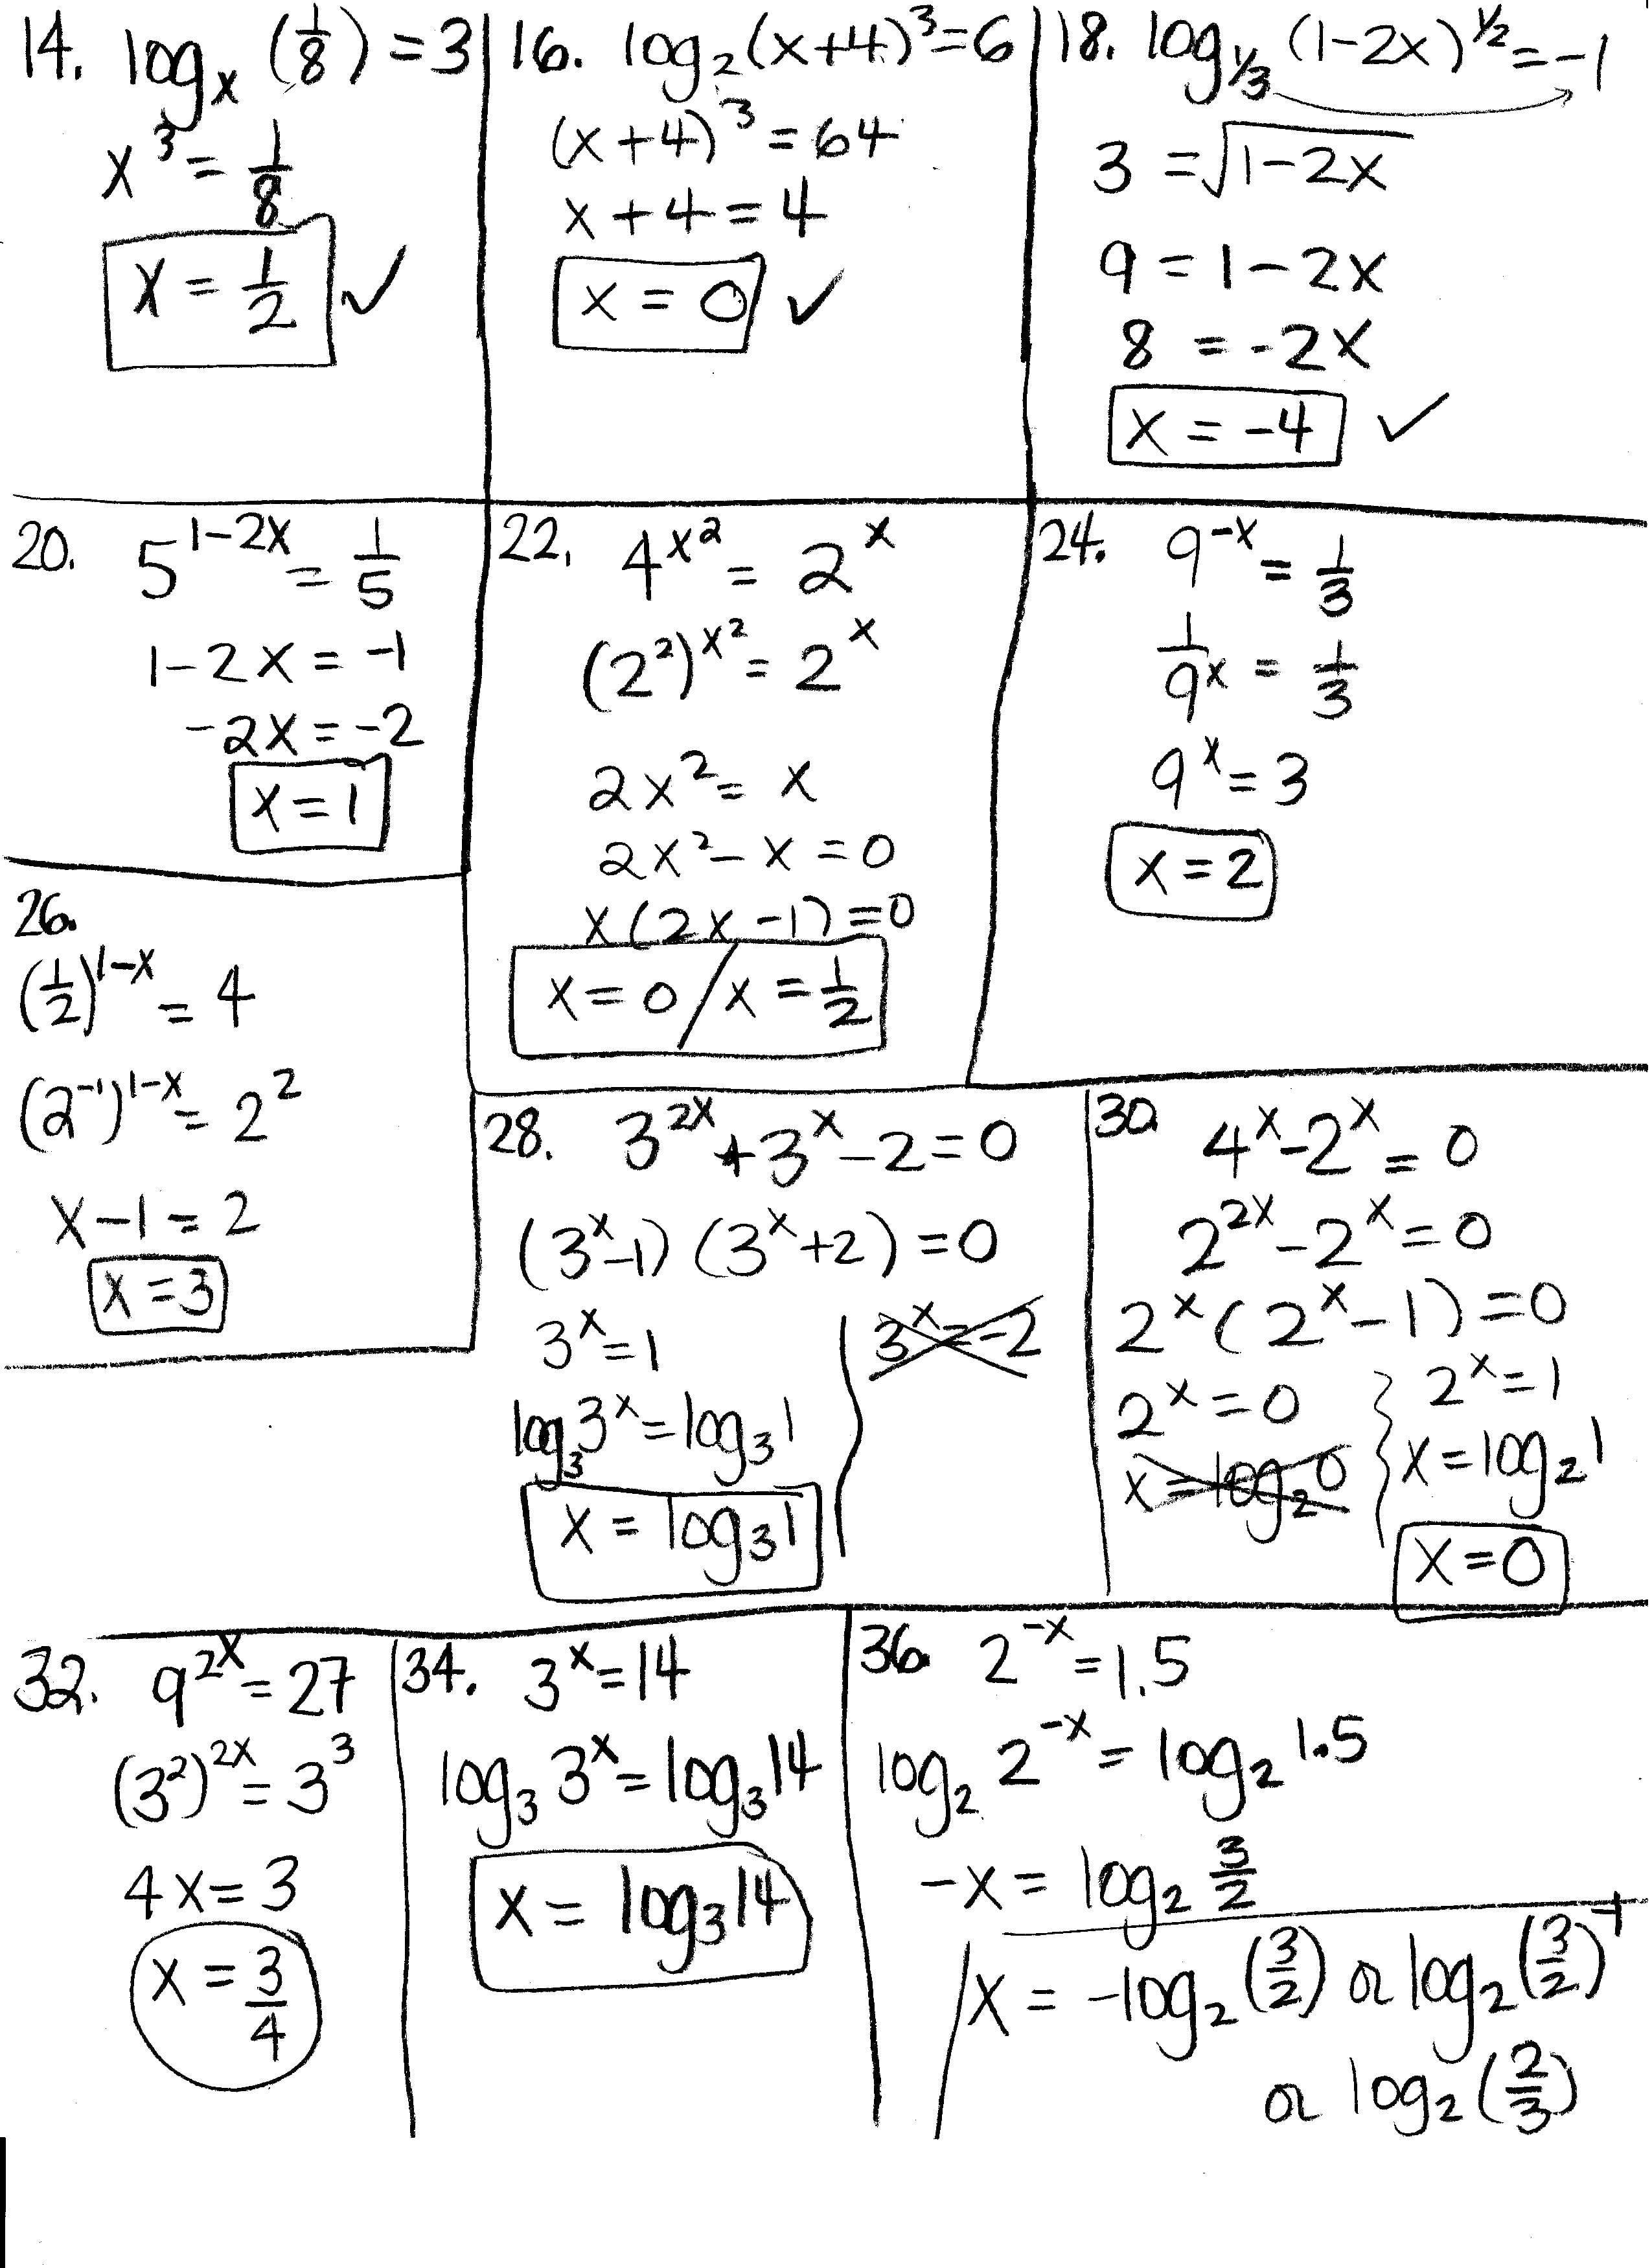 Search Exponents And Logarithms Worksheet As Eic Worksheet